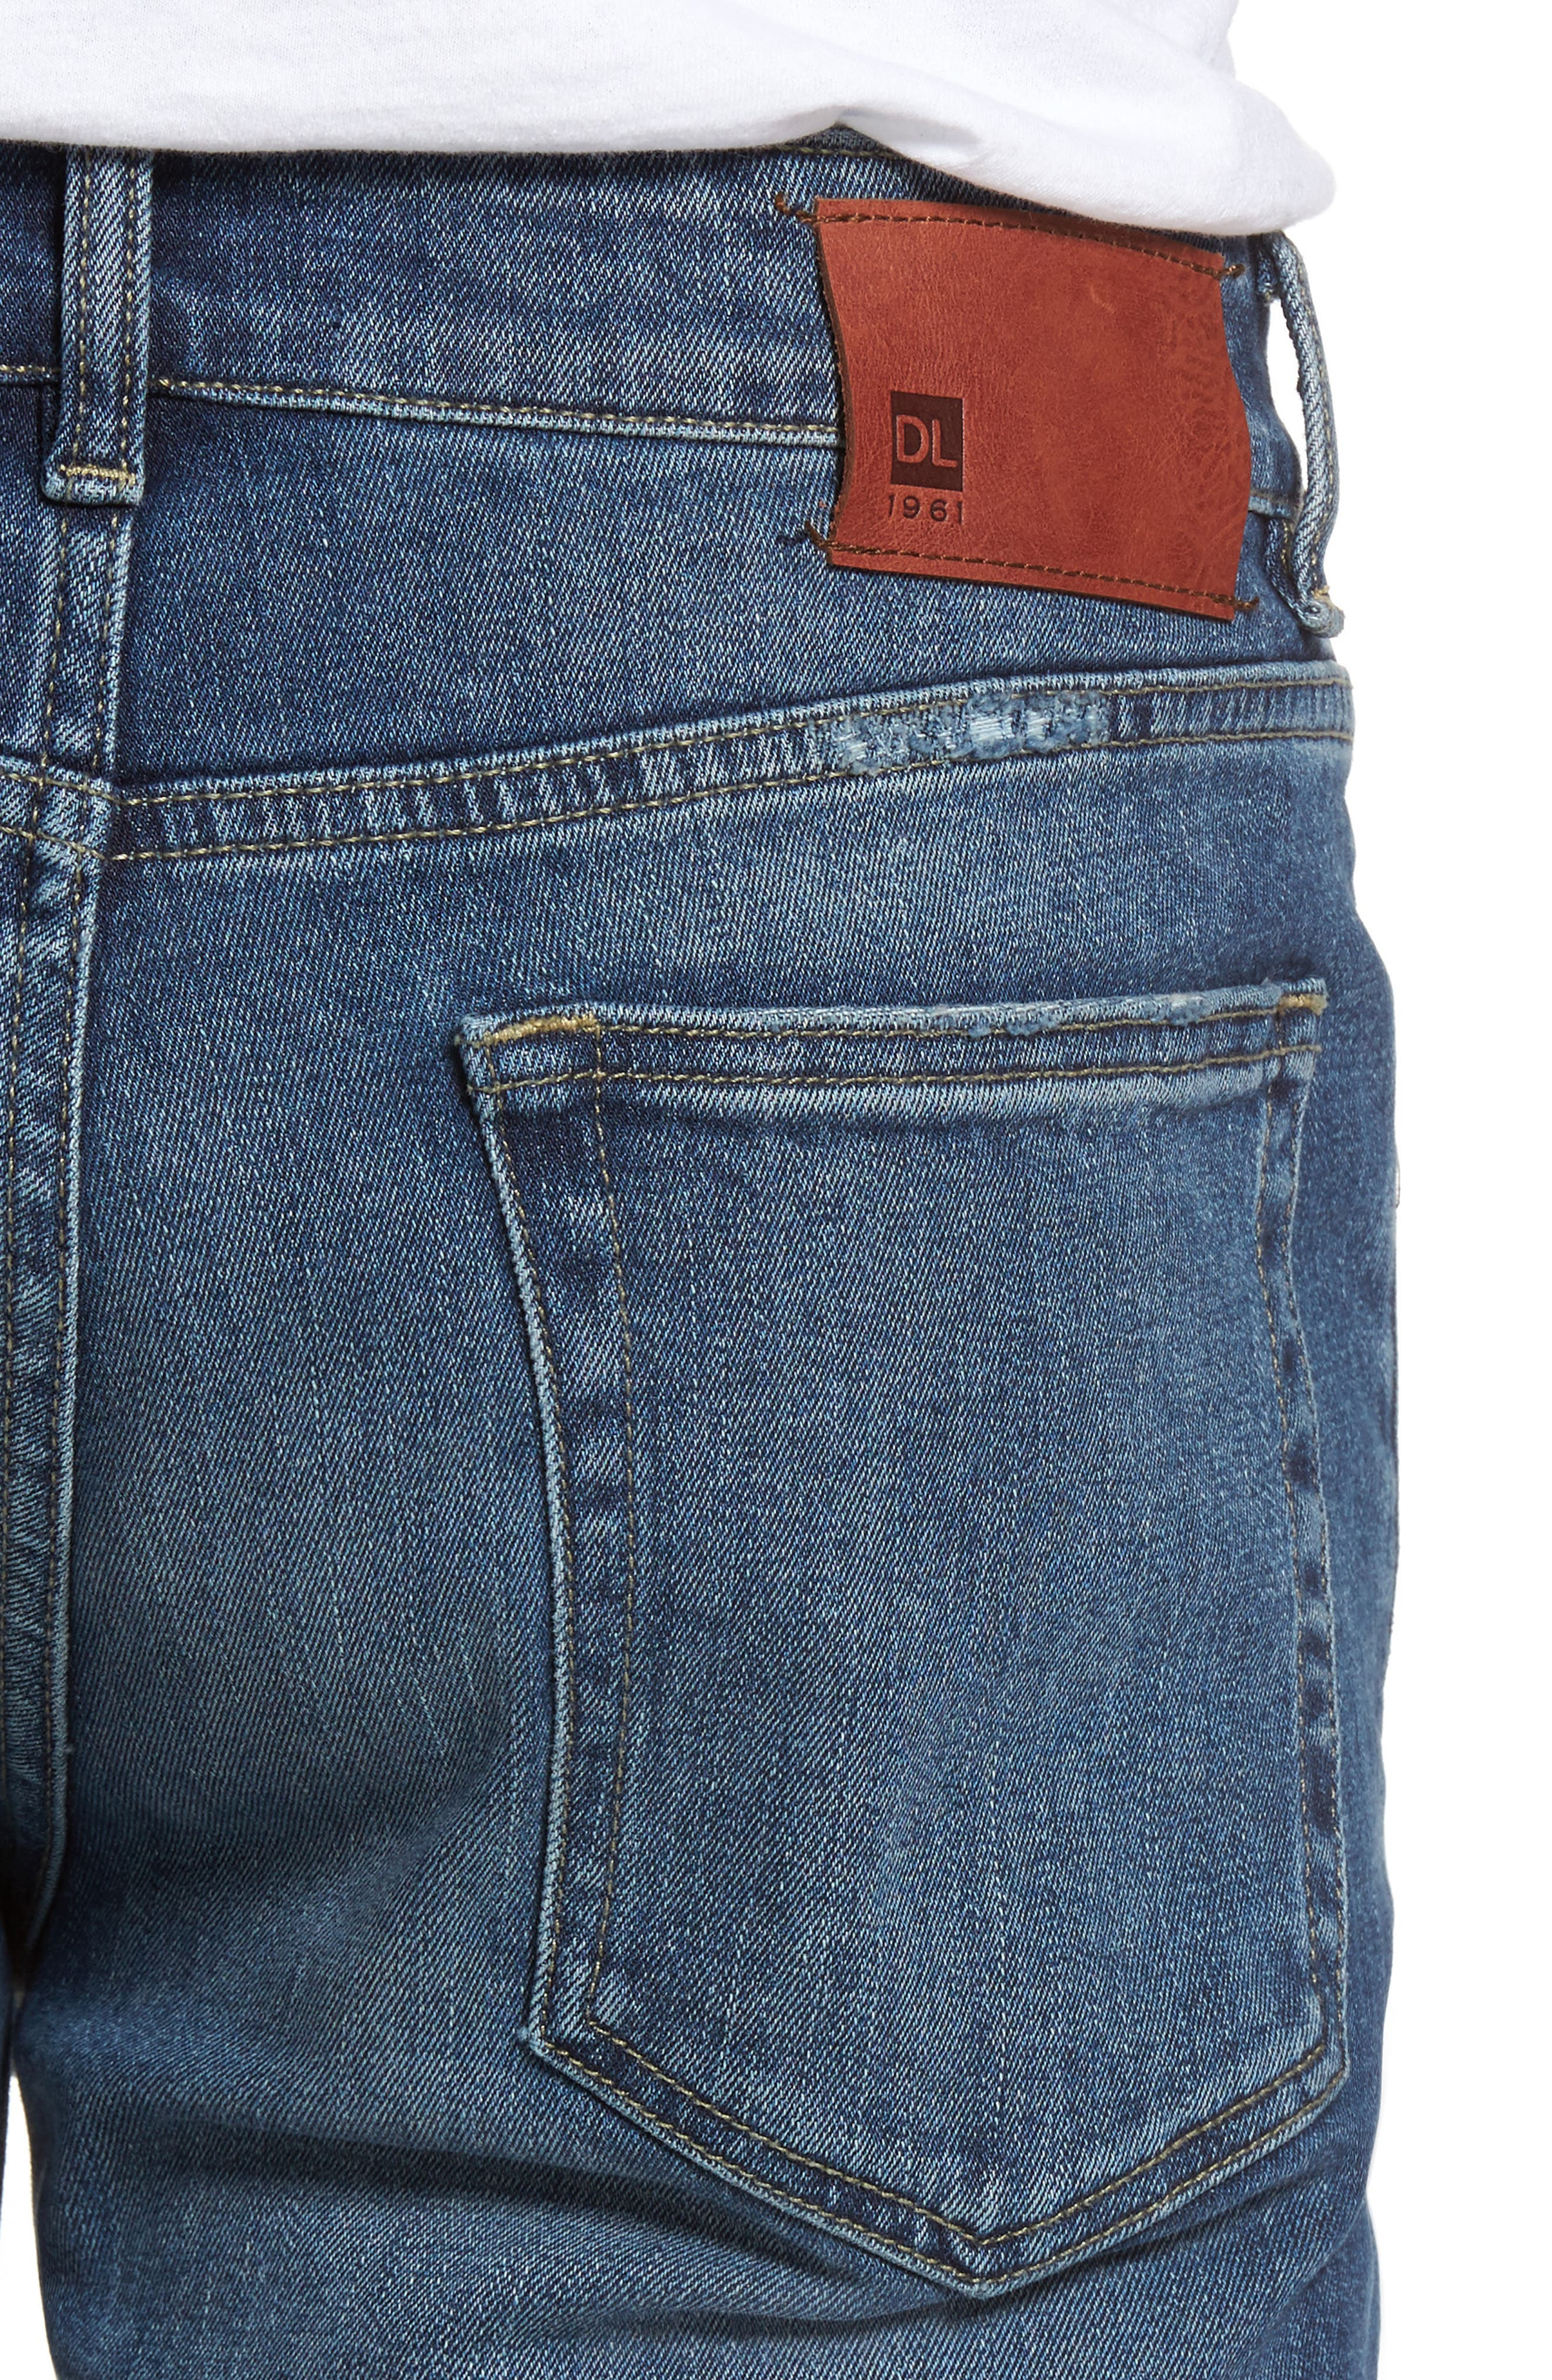 Russell Slim Straight Fit Jeans,                             Alternate thumbnail 4, color,                             Twine